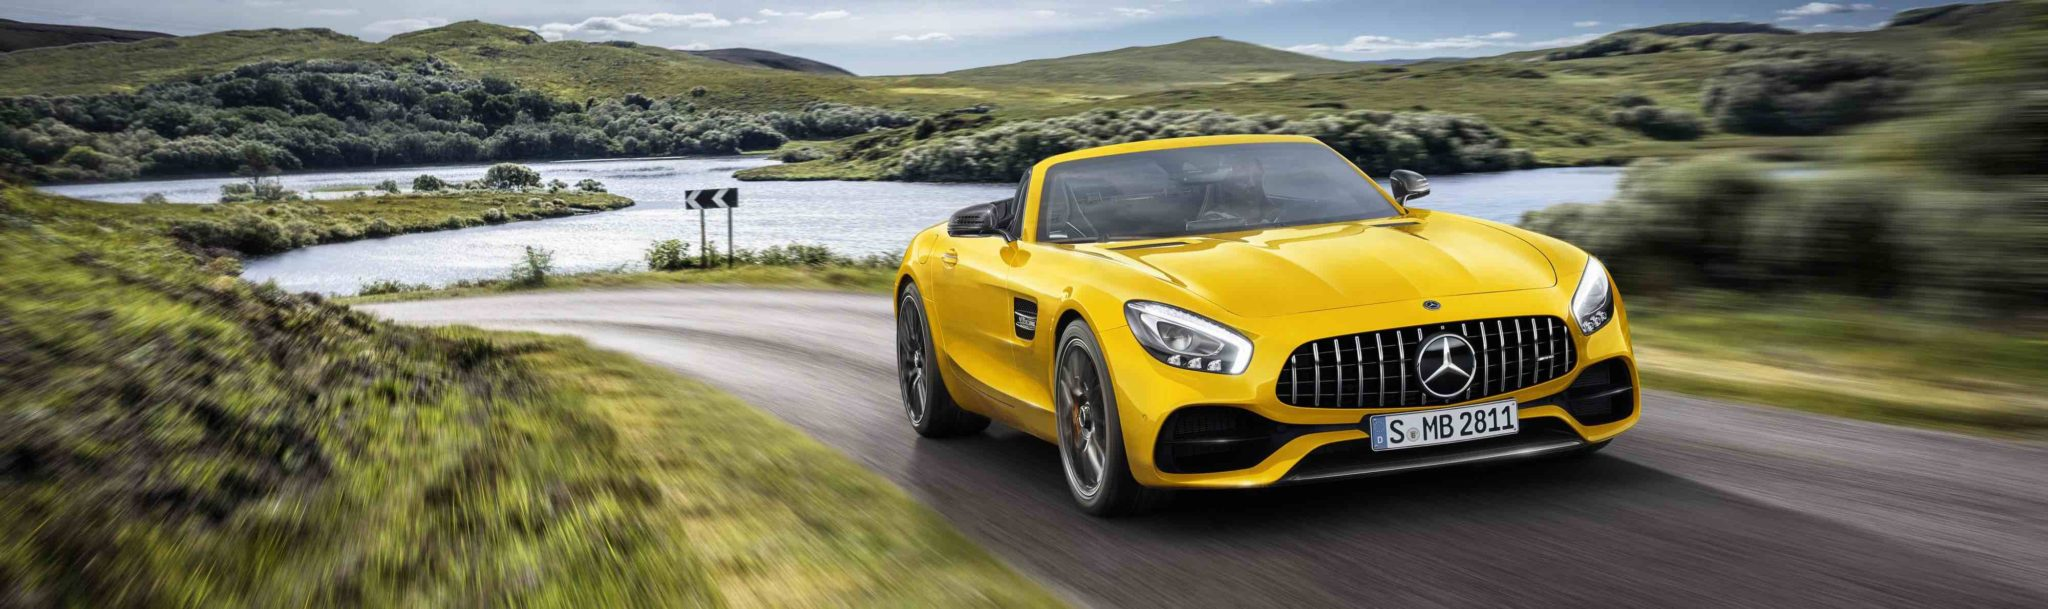 ORDER BOOKS OPEN FOR NEW MERCEDES-AMG GT S ROADSTER